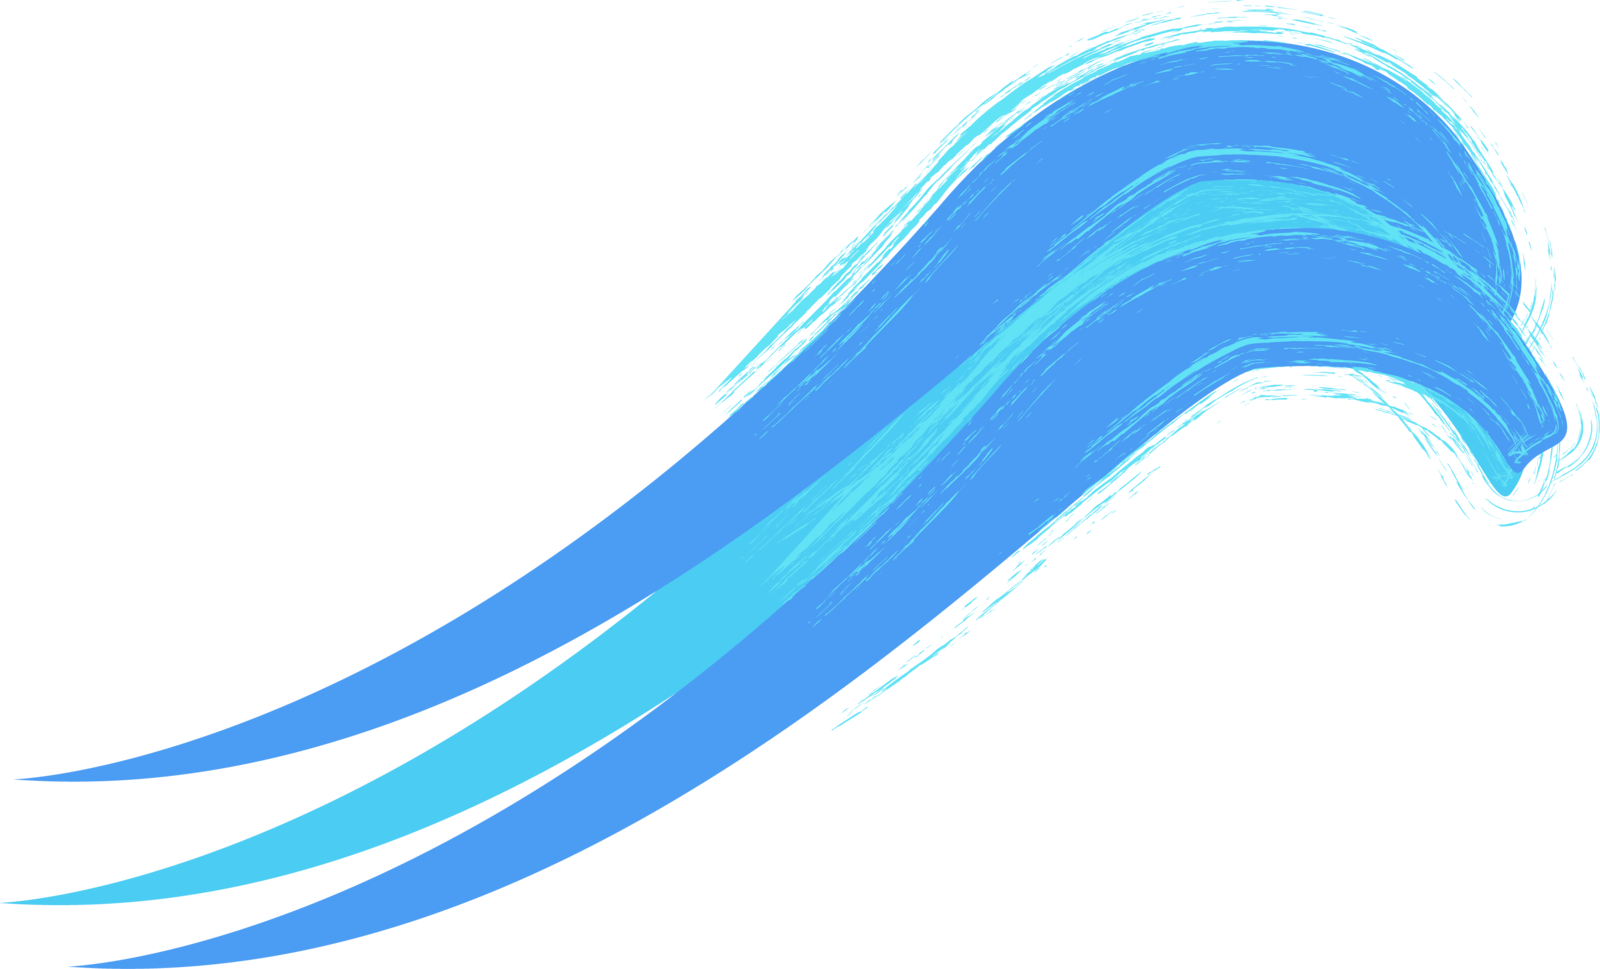 1600x969 Tidal Wave Png Transparent Tidal Wave.png Images. Pluspng